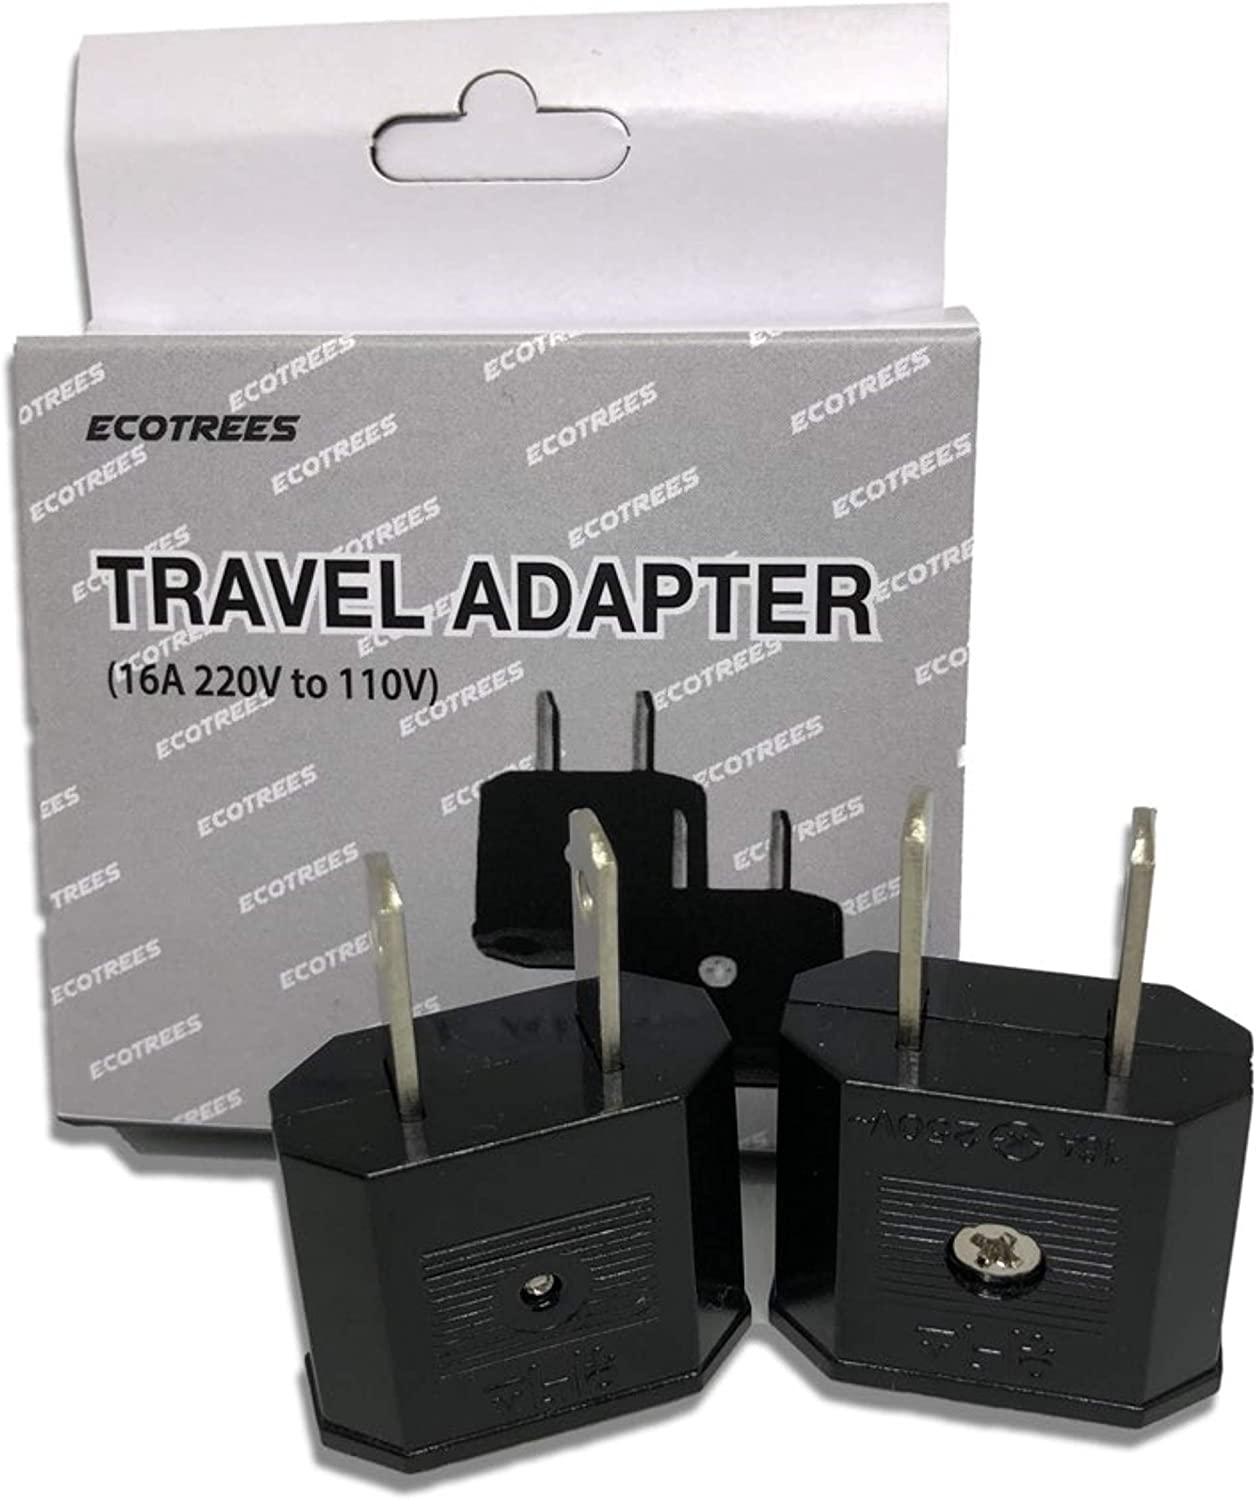 Ecotrees Travel Adapter 220v to 110v Travel Adapter Set of 2/220 to 110 Travel Adapter Set of 2